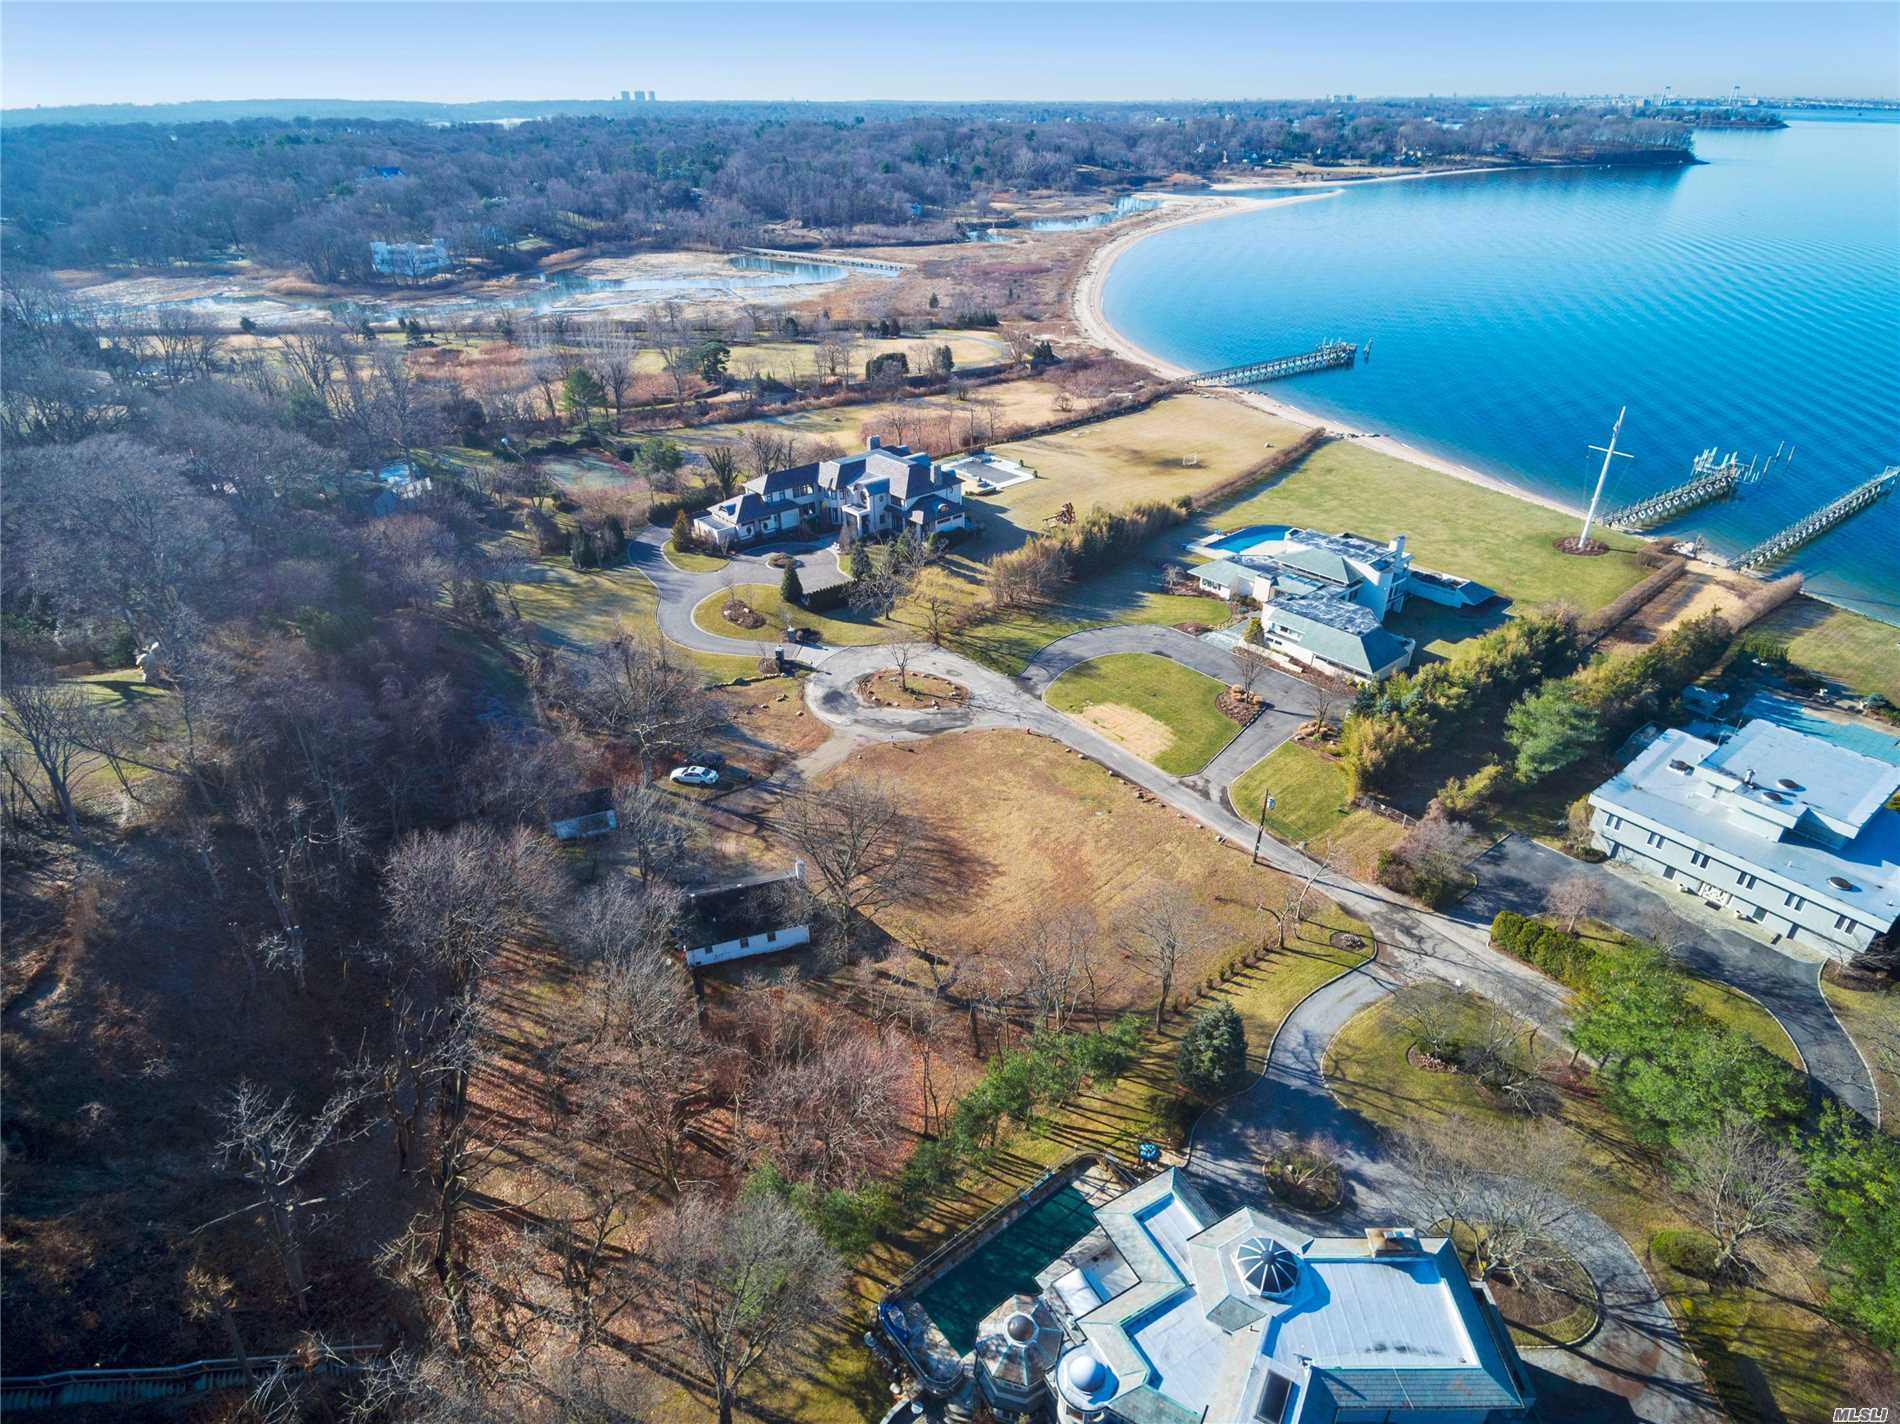 Cottage (Sold As Is) On 1.2 Acre Approved Building Lot In Prestigious Village Of Sands Point On A Quiet Private Street Lined By Multi-Million Dollar Homes. Unique Property Has The Opportunity To Obtain Spectacular Nyc Skyline, Water, Bridges, And Sunset Views. Includes A Permanent Easement To A Serene Mile Long Private Beach.